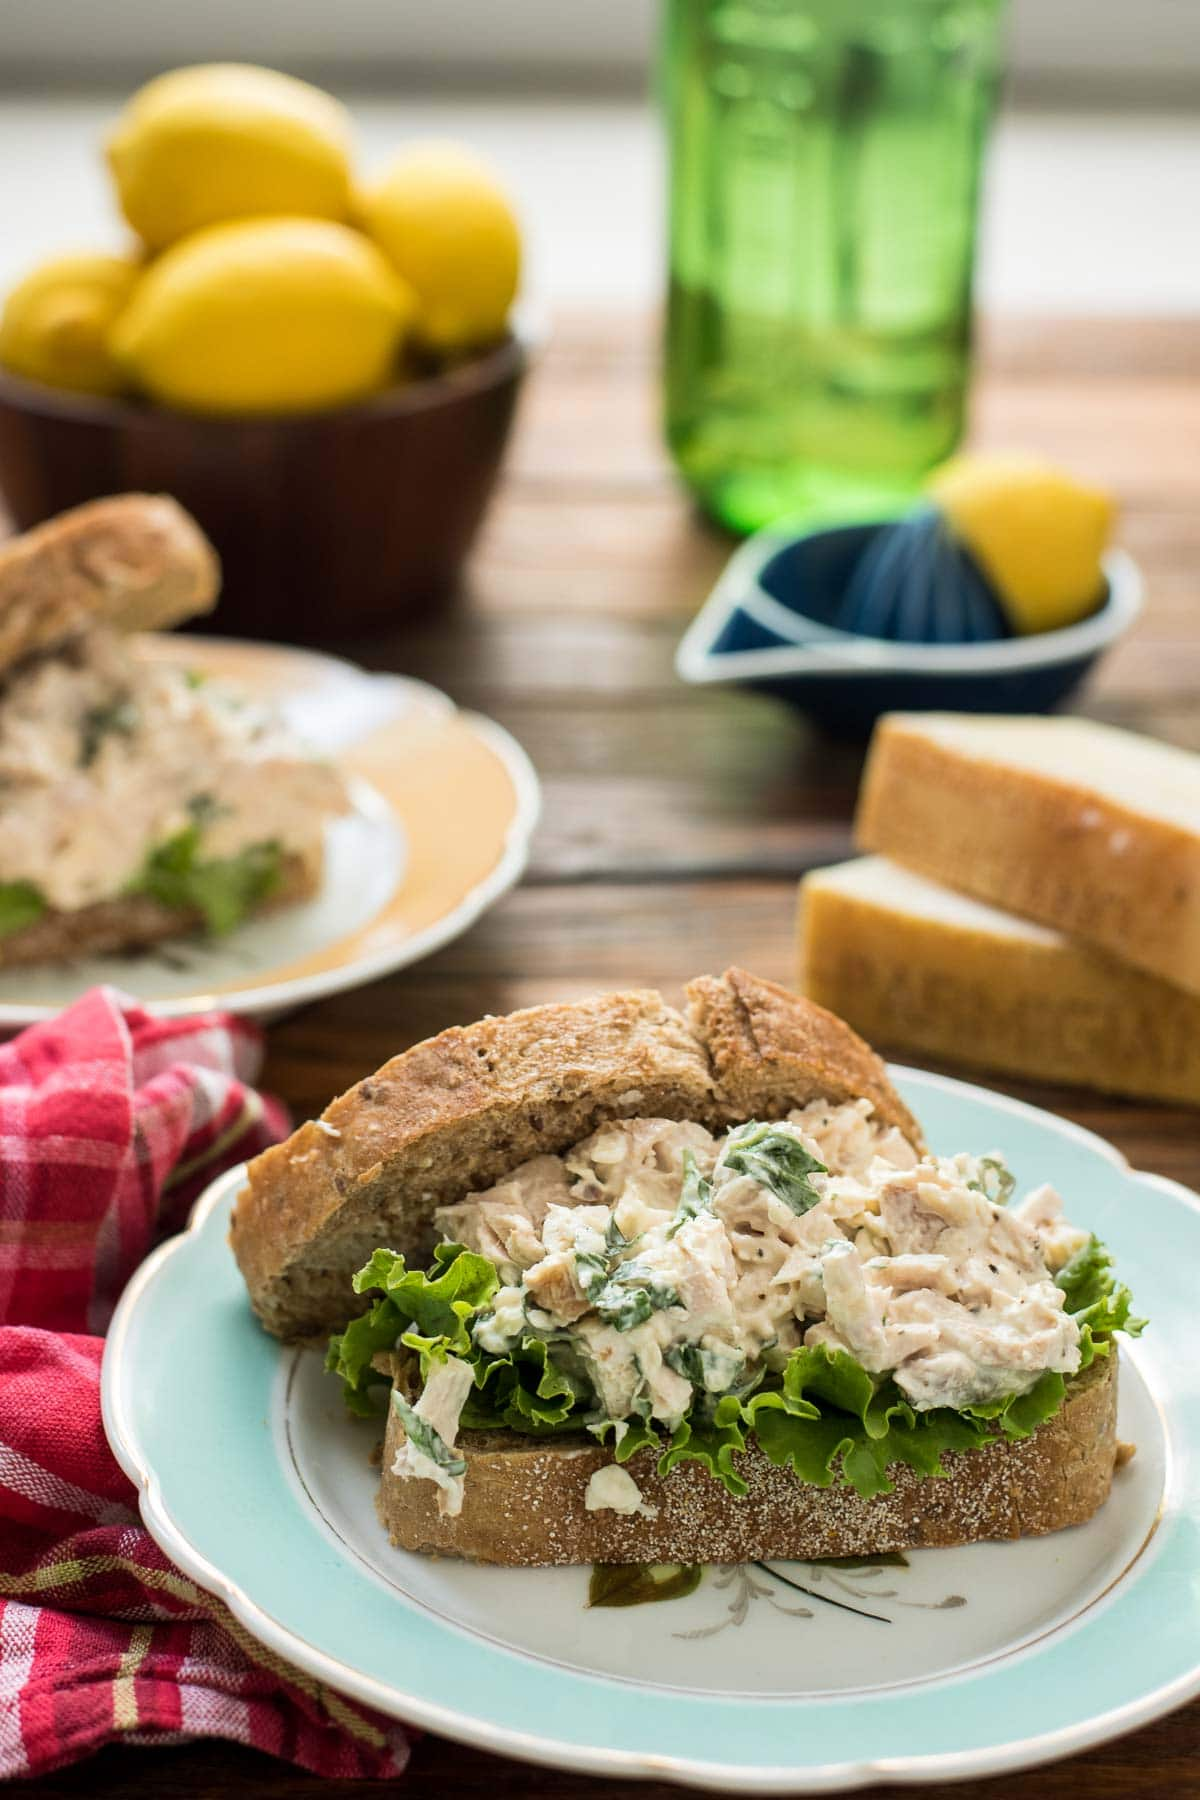 This Parmesan Basil Chicken Salad is a great summer sandwich.